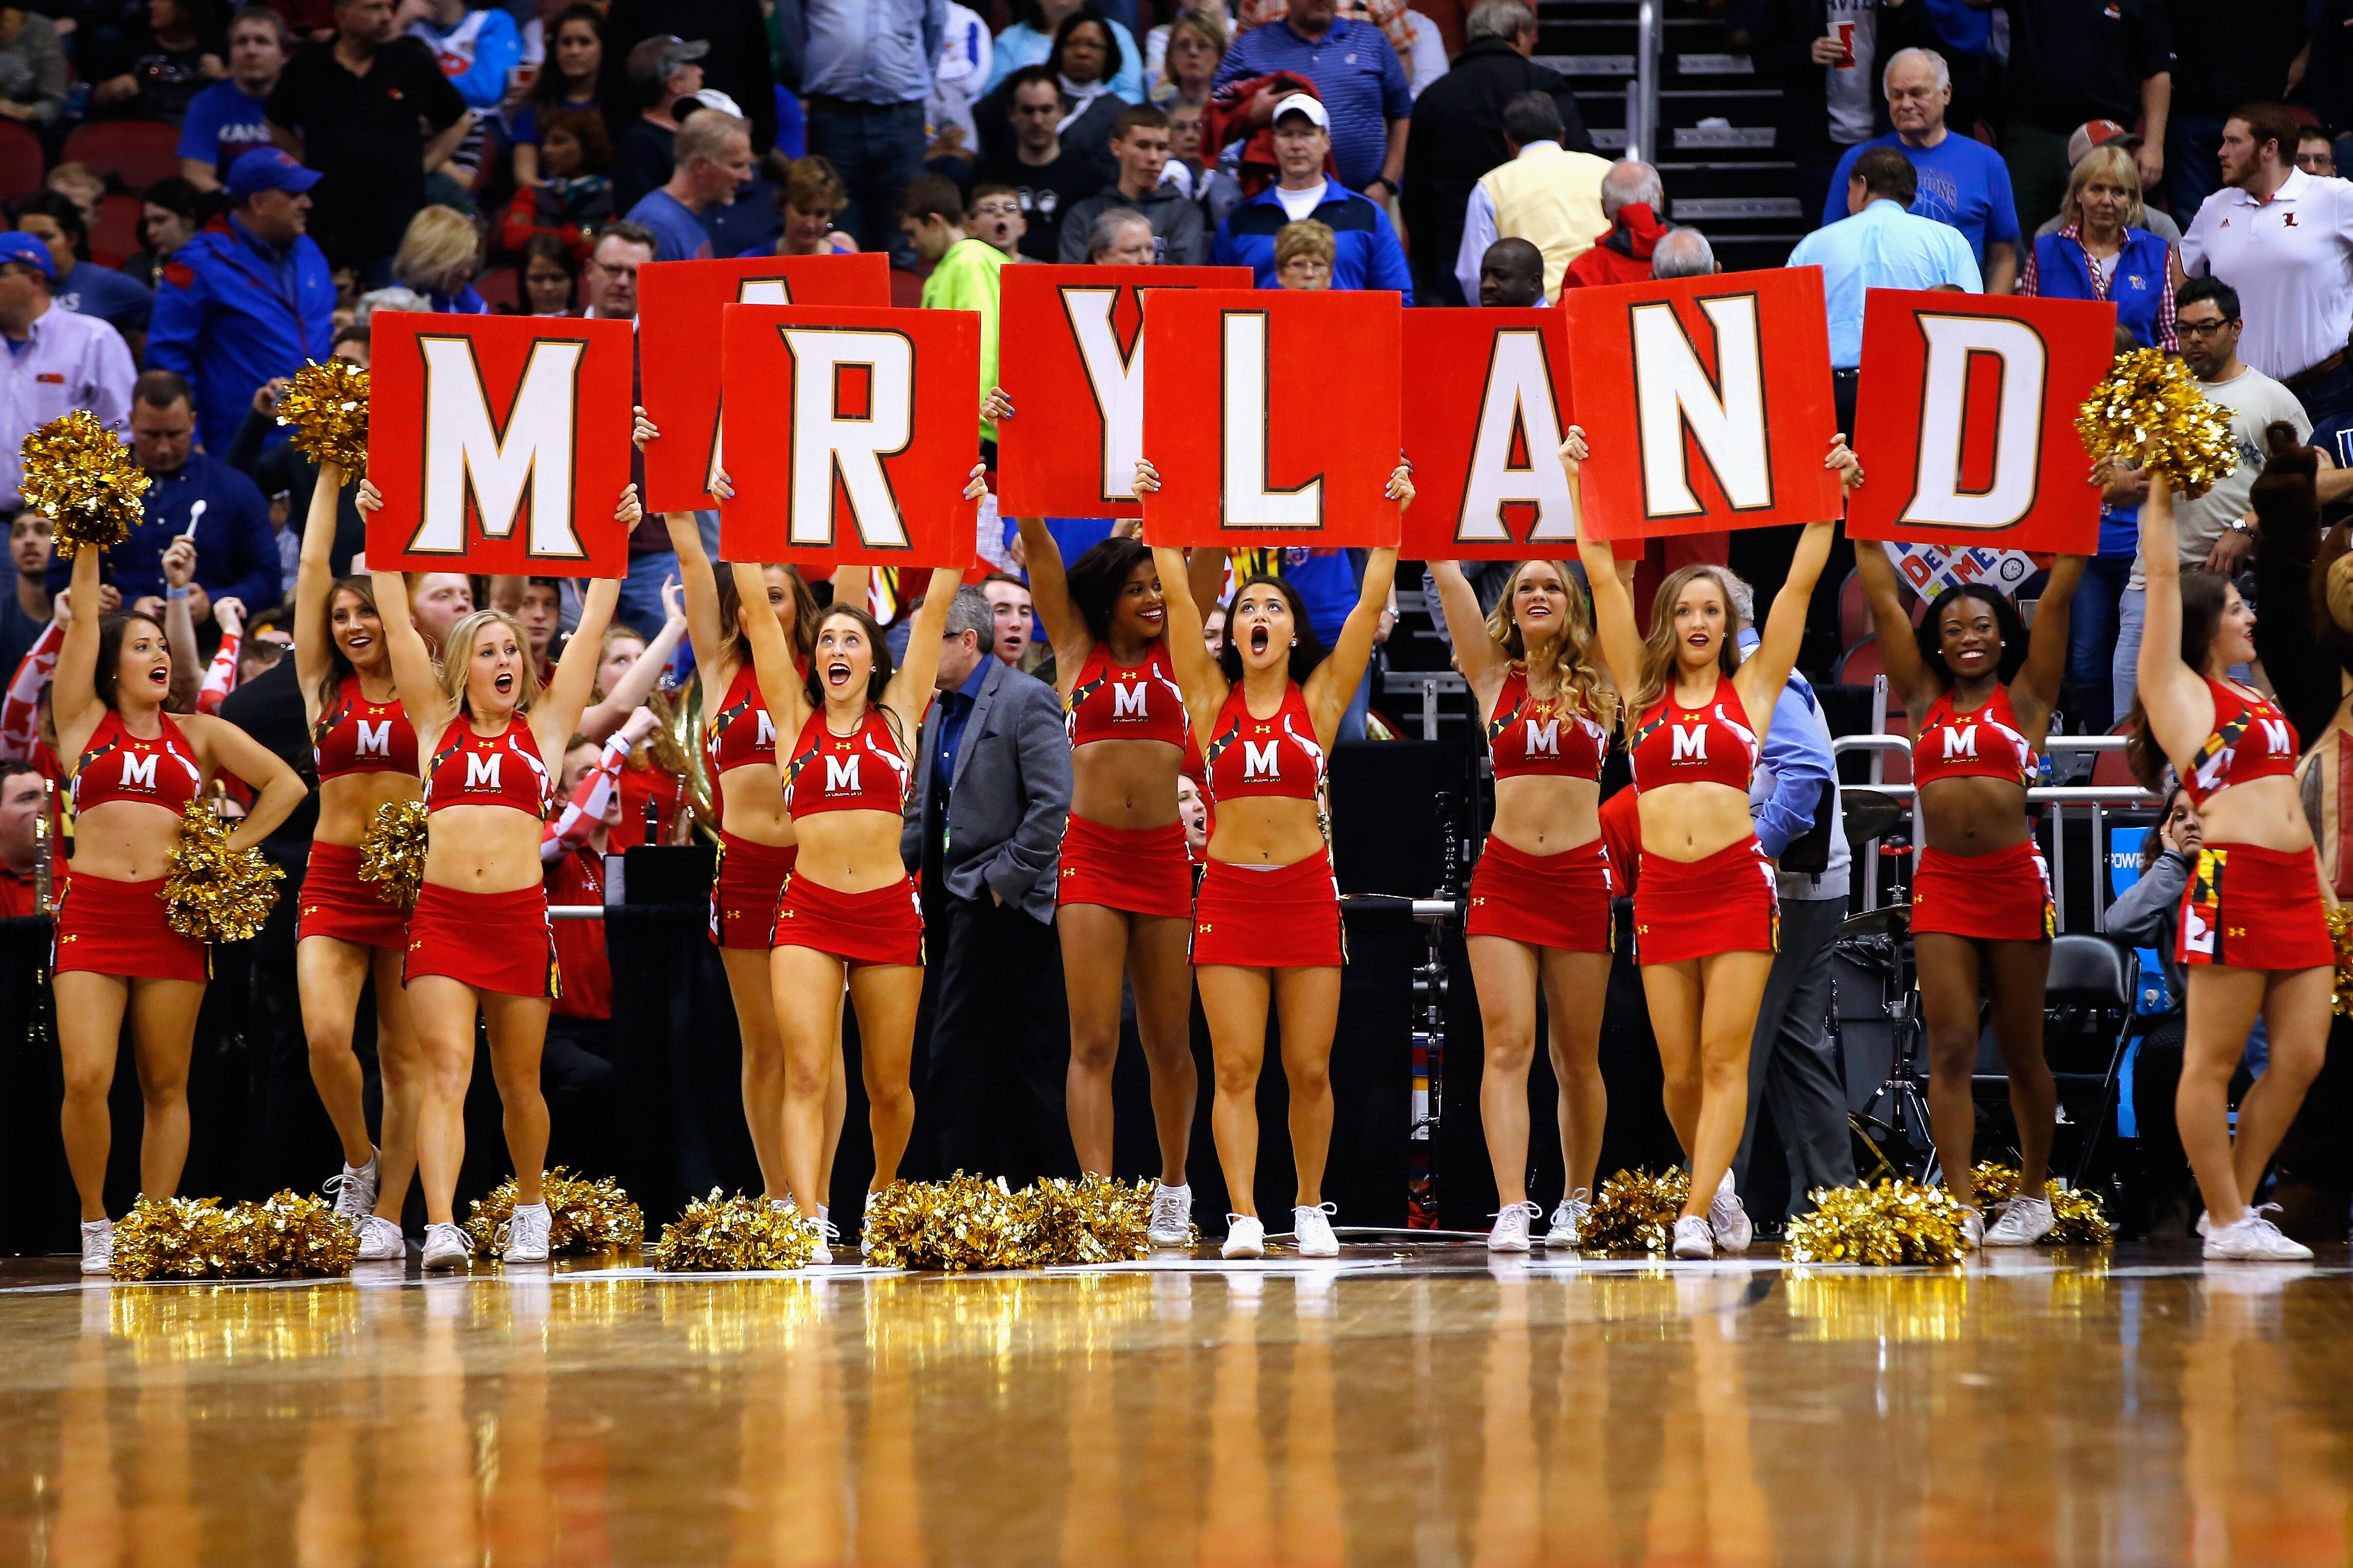 The Maryland Terrapins cheerleaders perform during the